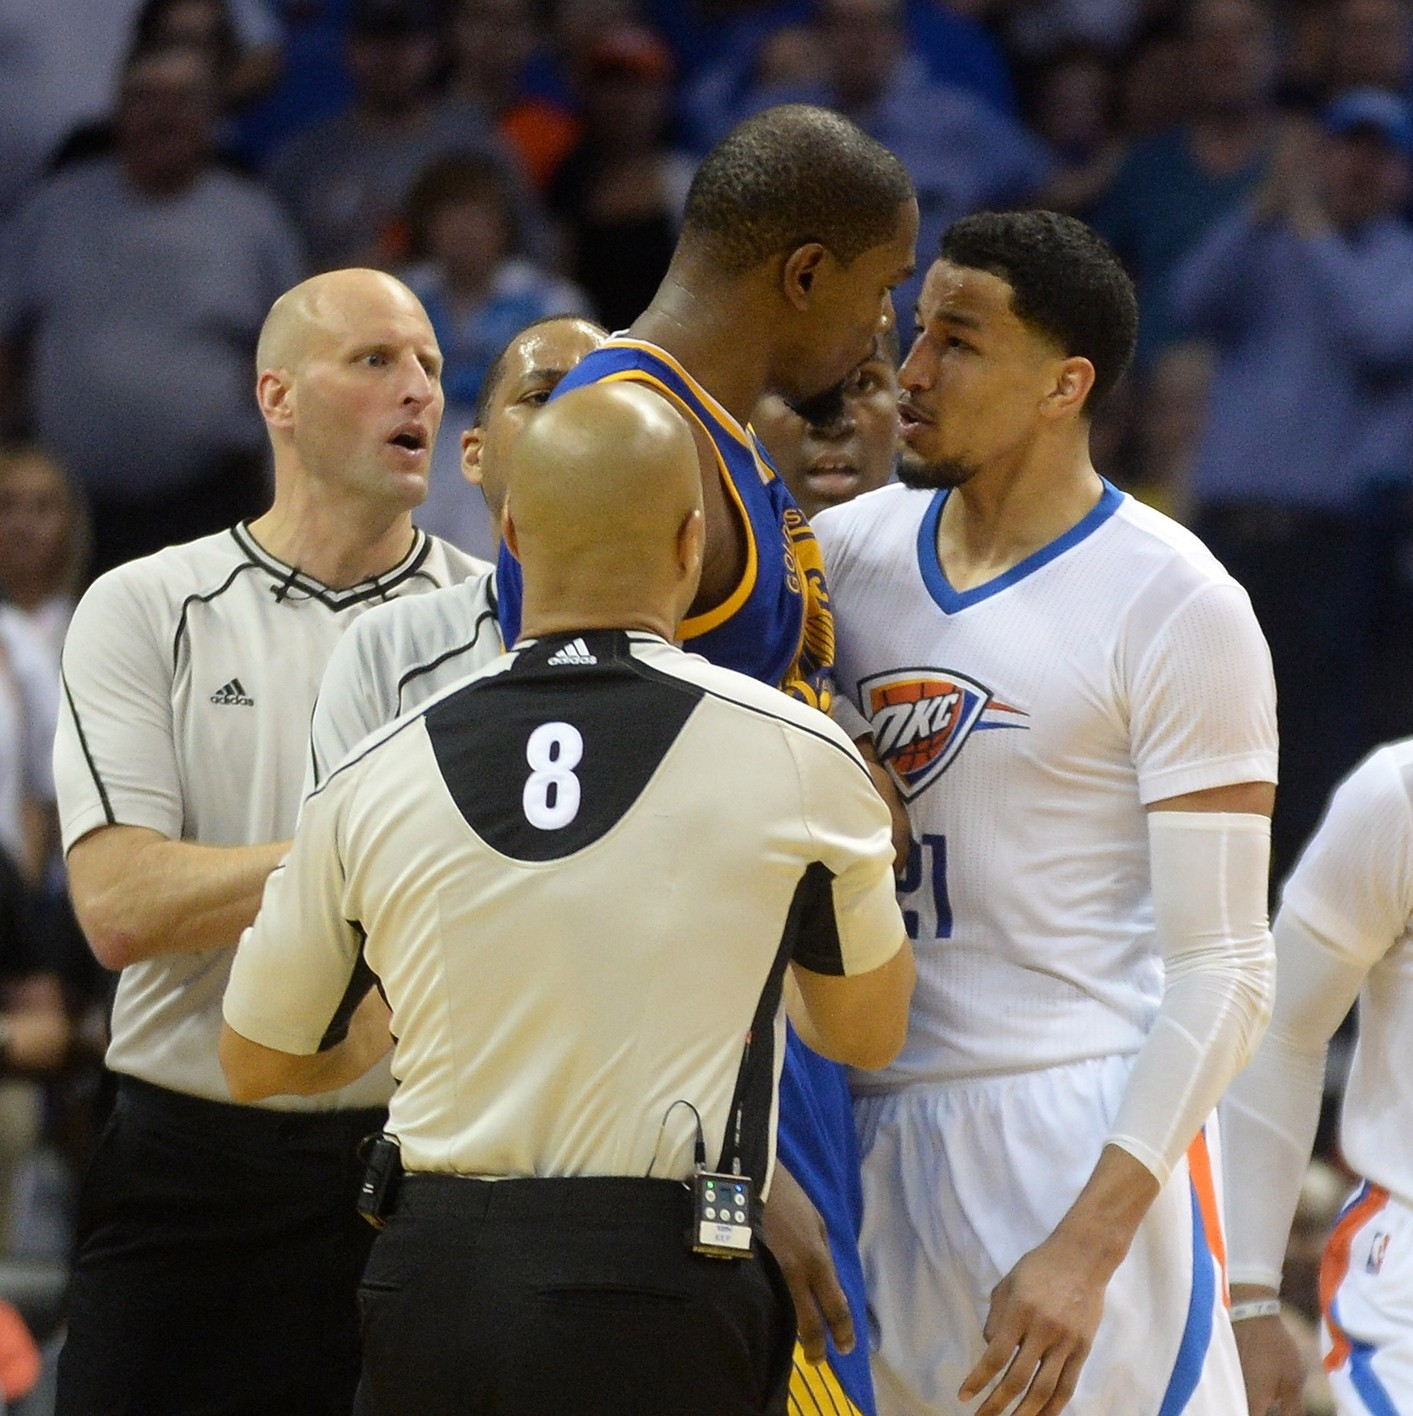 The-case-for-andr-roberson-as-defensive-player-of-the-year-1489433071.jpg?crop=0.6640625xw:1xh;0